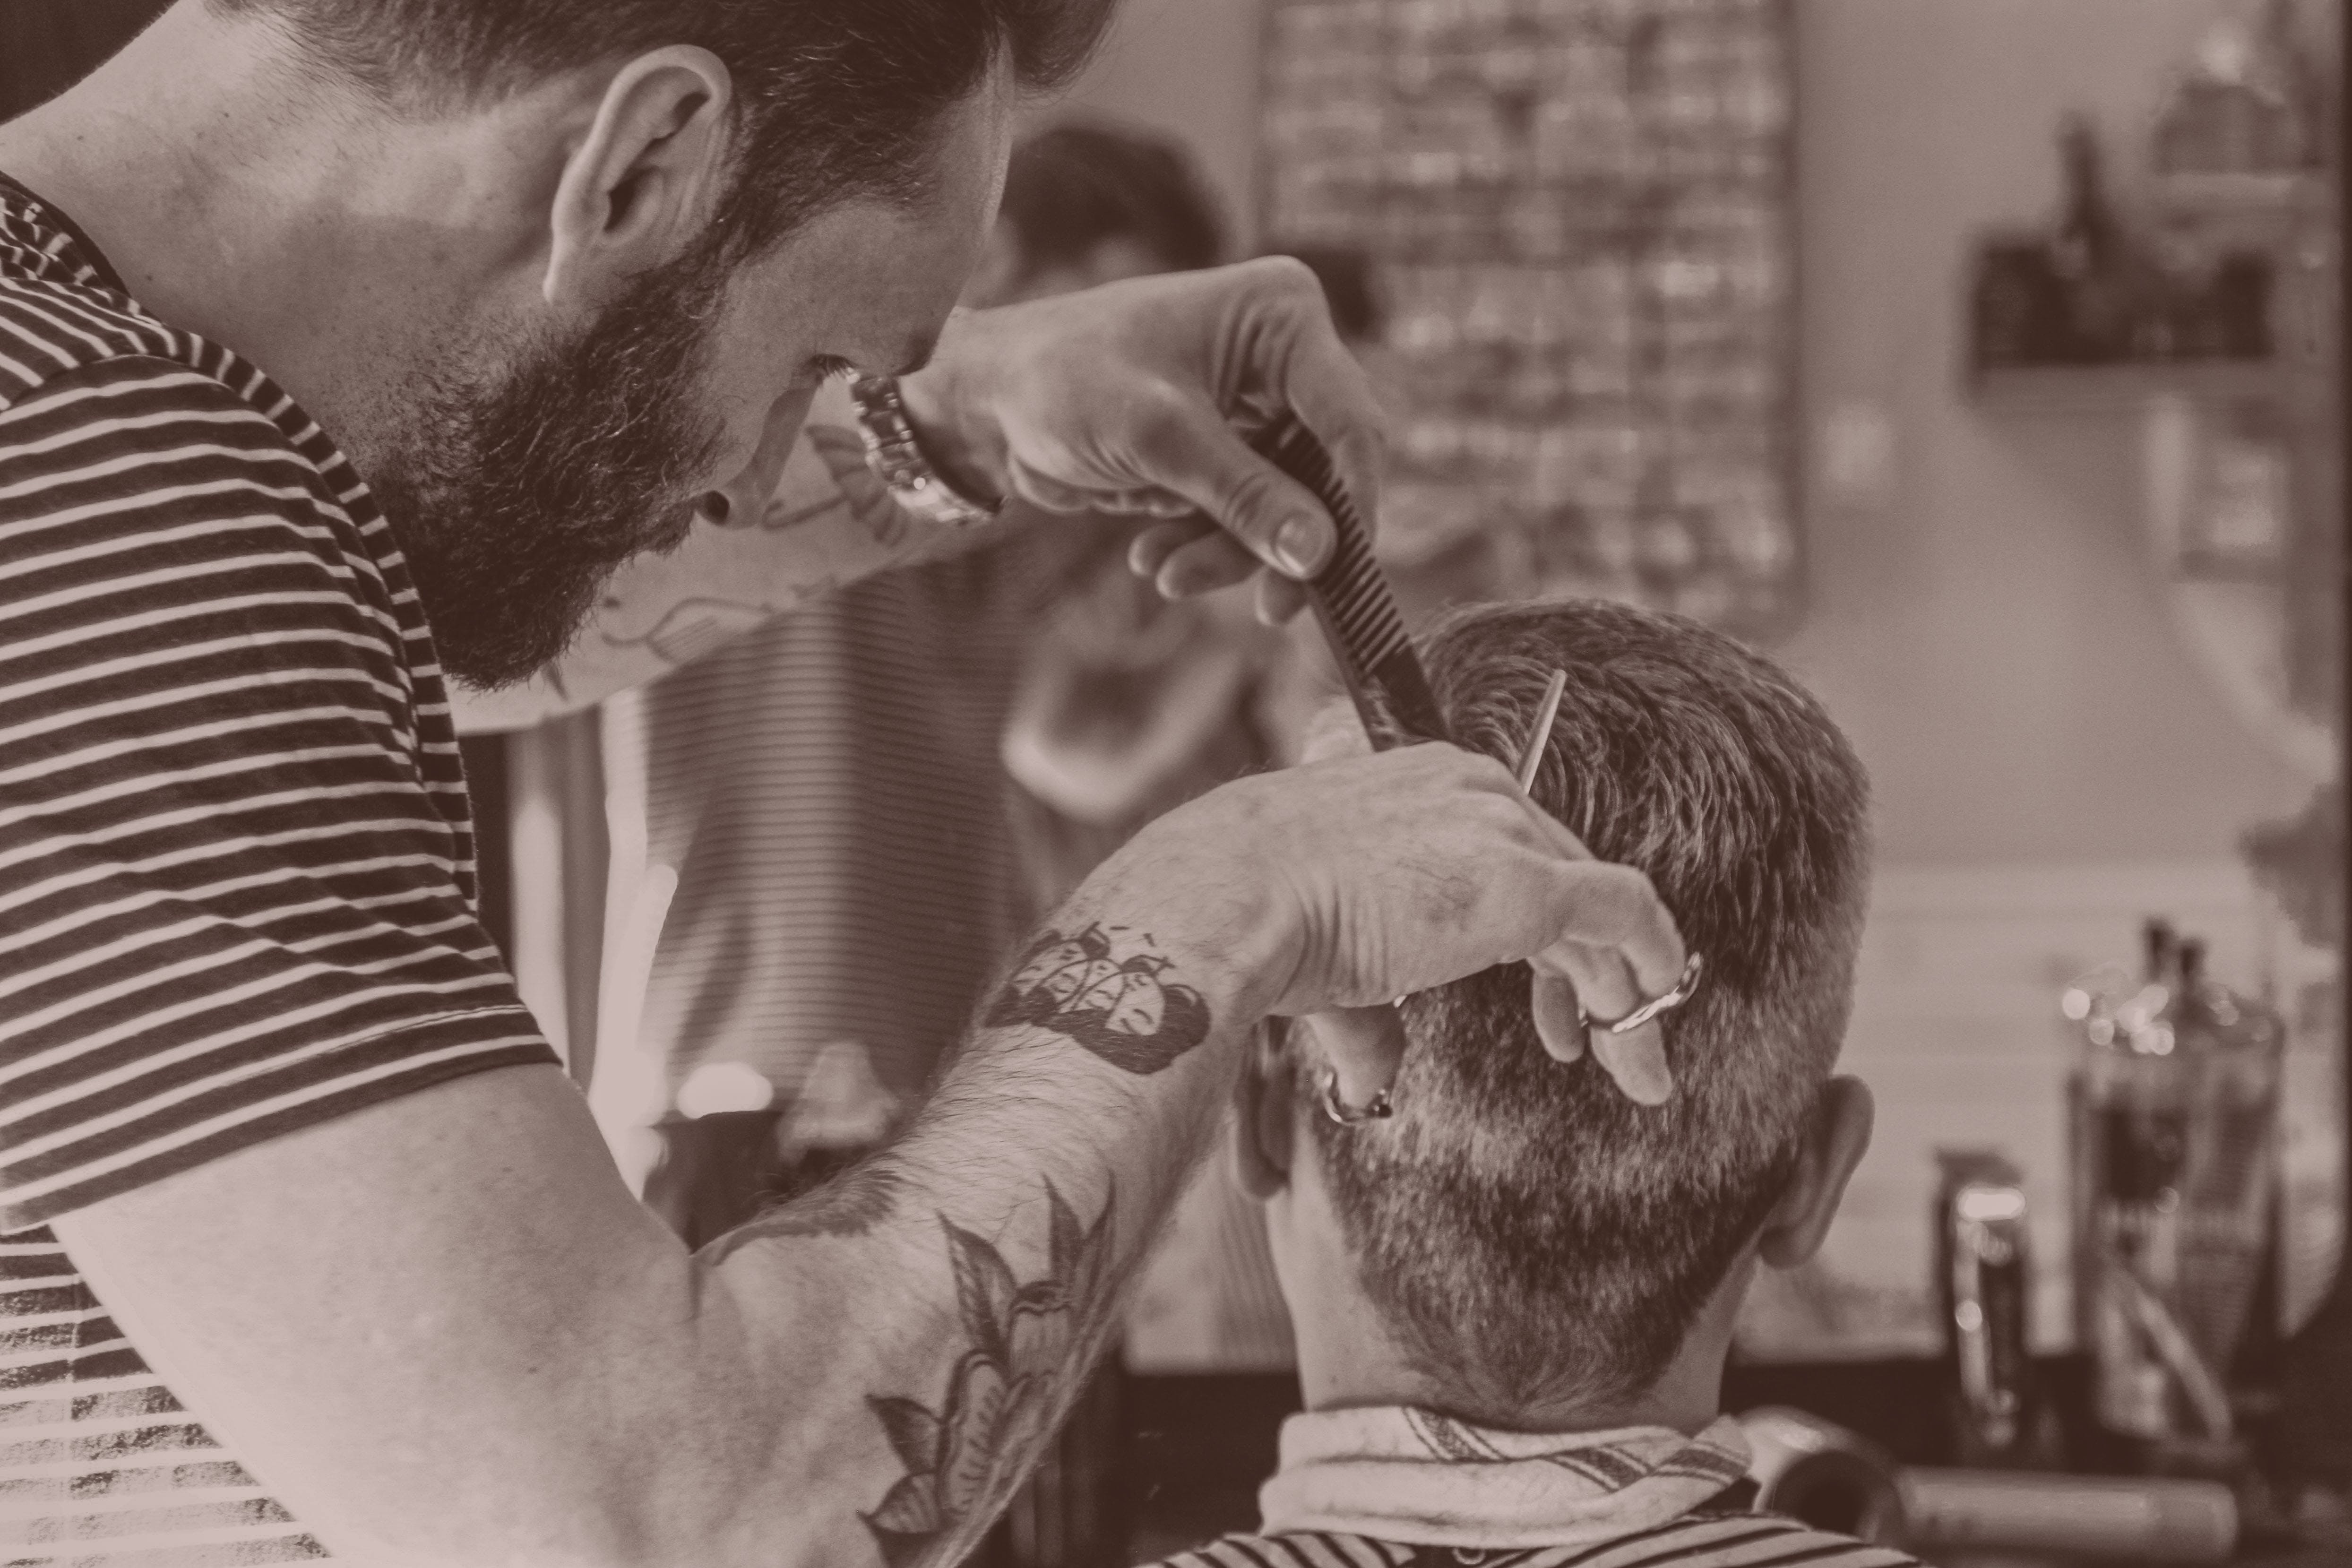 Hairdresser Matthew creating an easy to style cut.